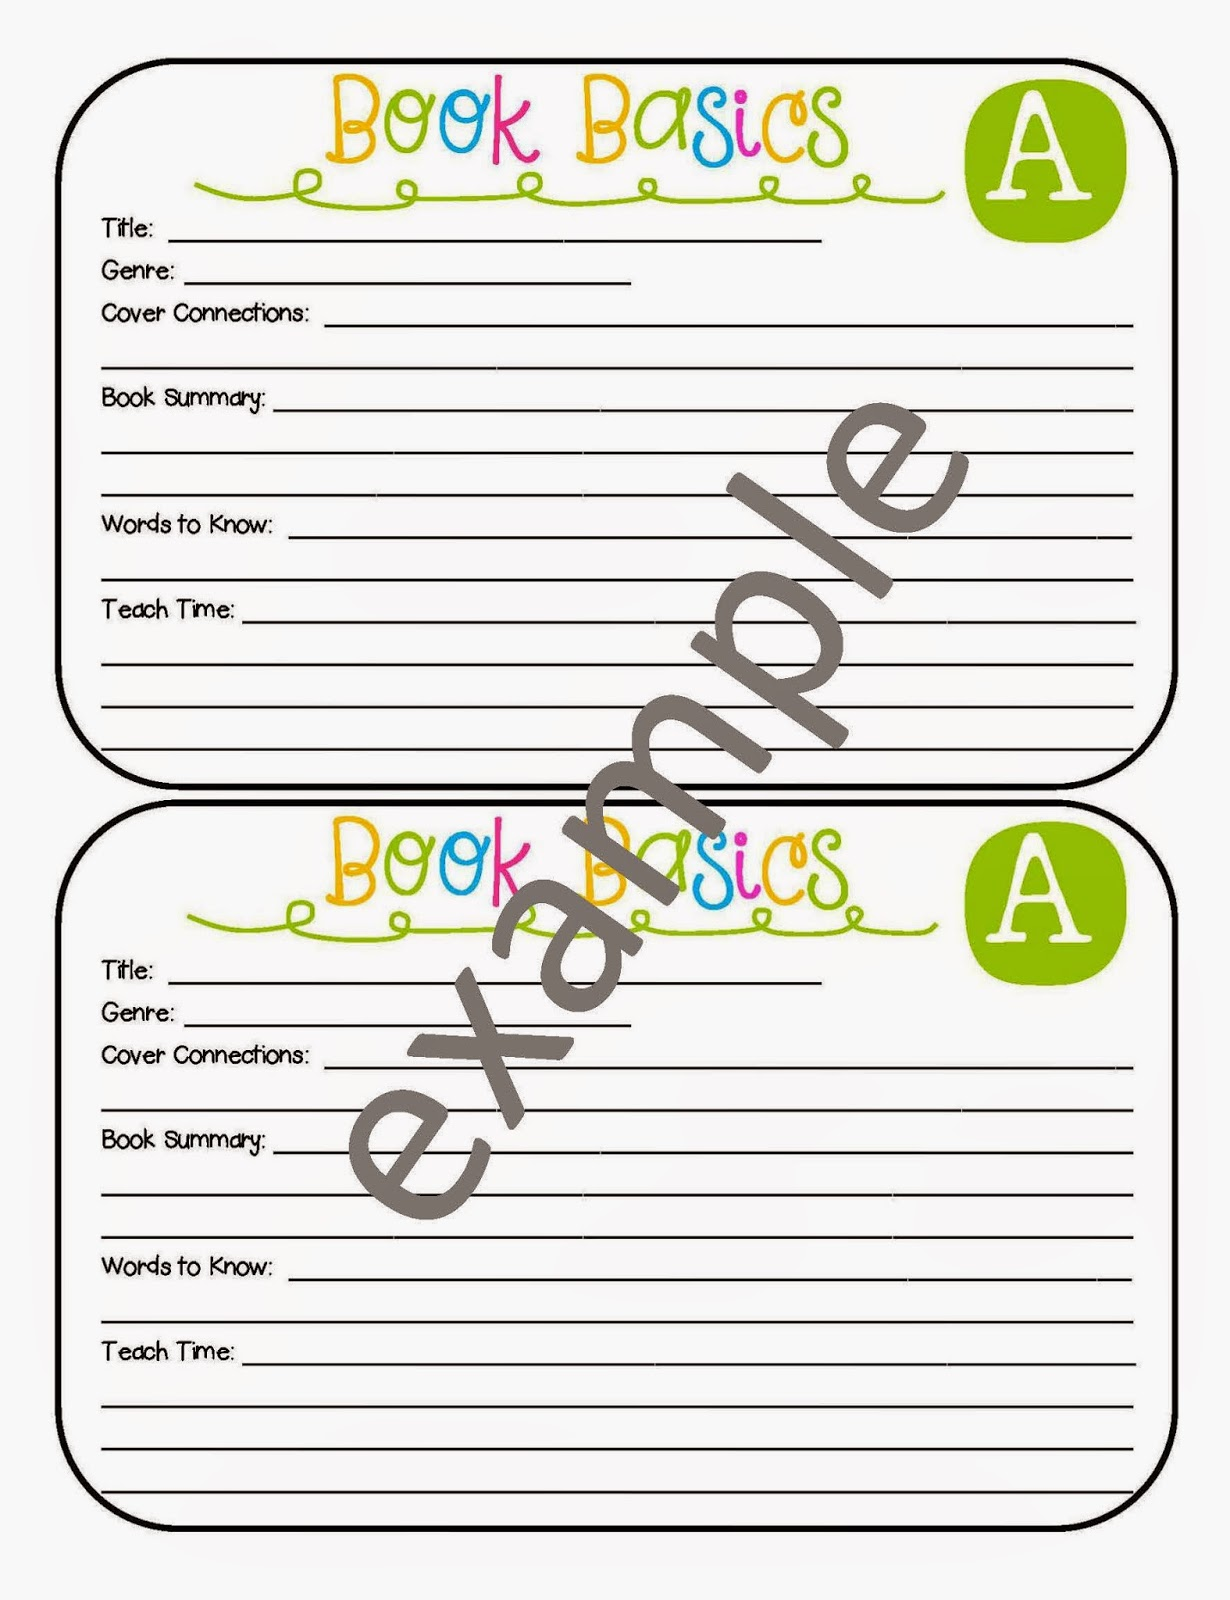 http://www.teacherspayteachers.com/Product/Guided-Reading-Goodies-1398388